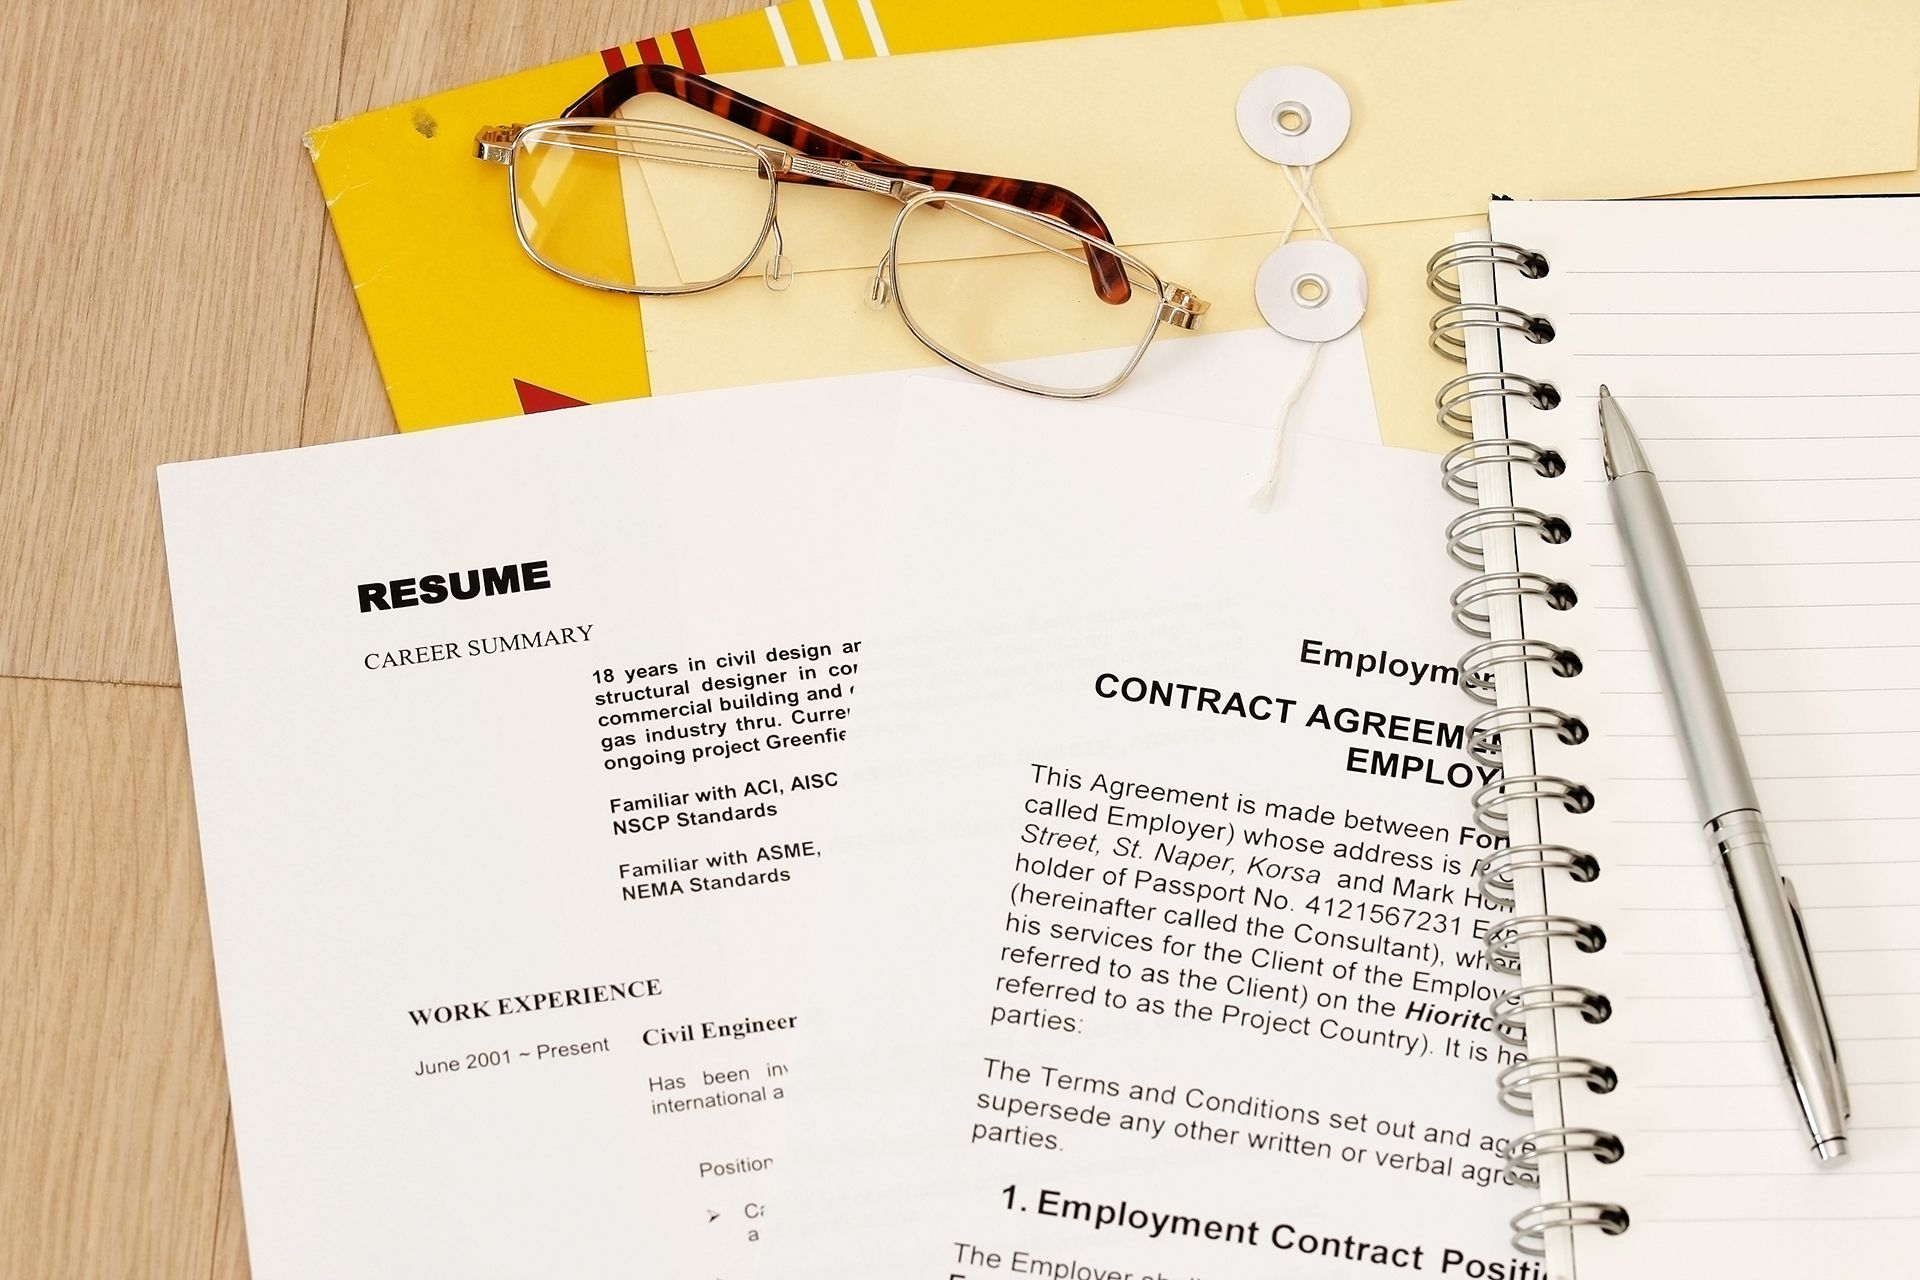 Edmonton Resume Services is a Professional Resume Writing pany in Edmonton Alberta where we promote and market clients across all career levels As one of the leading resume services in Edmonton—you are teaming with a Canadian Multi Certified Leading Professional resume writer with a Professional Certified Executive Resume Master Certificate a Certified Advanced Resume Writer a Certified Professional Resume Writer a Certified Resume Strategist and a Bachelor in Business Administration